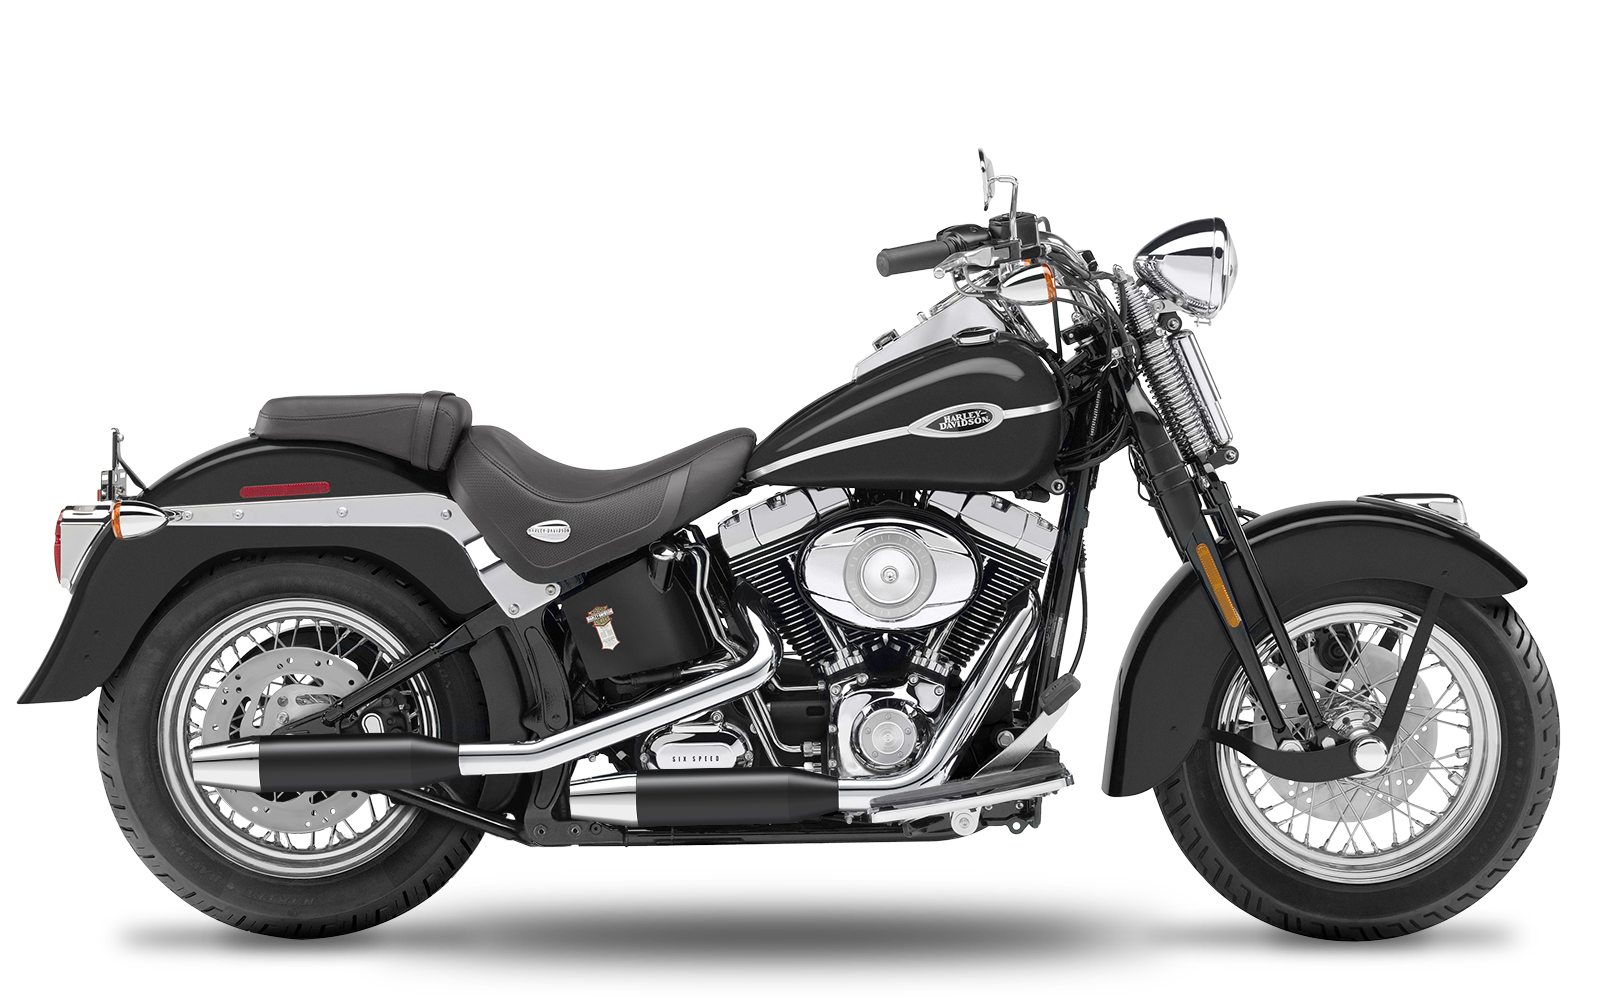 Softail - Springer - Evolution - -1999 - Slipons